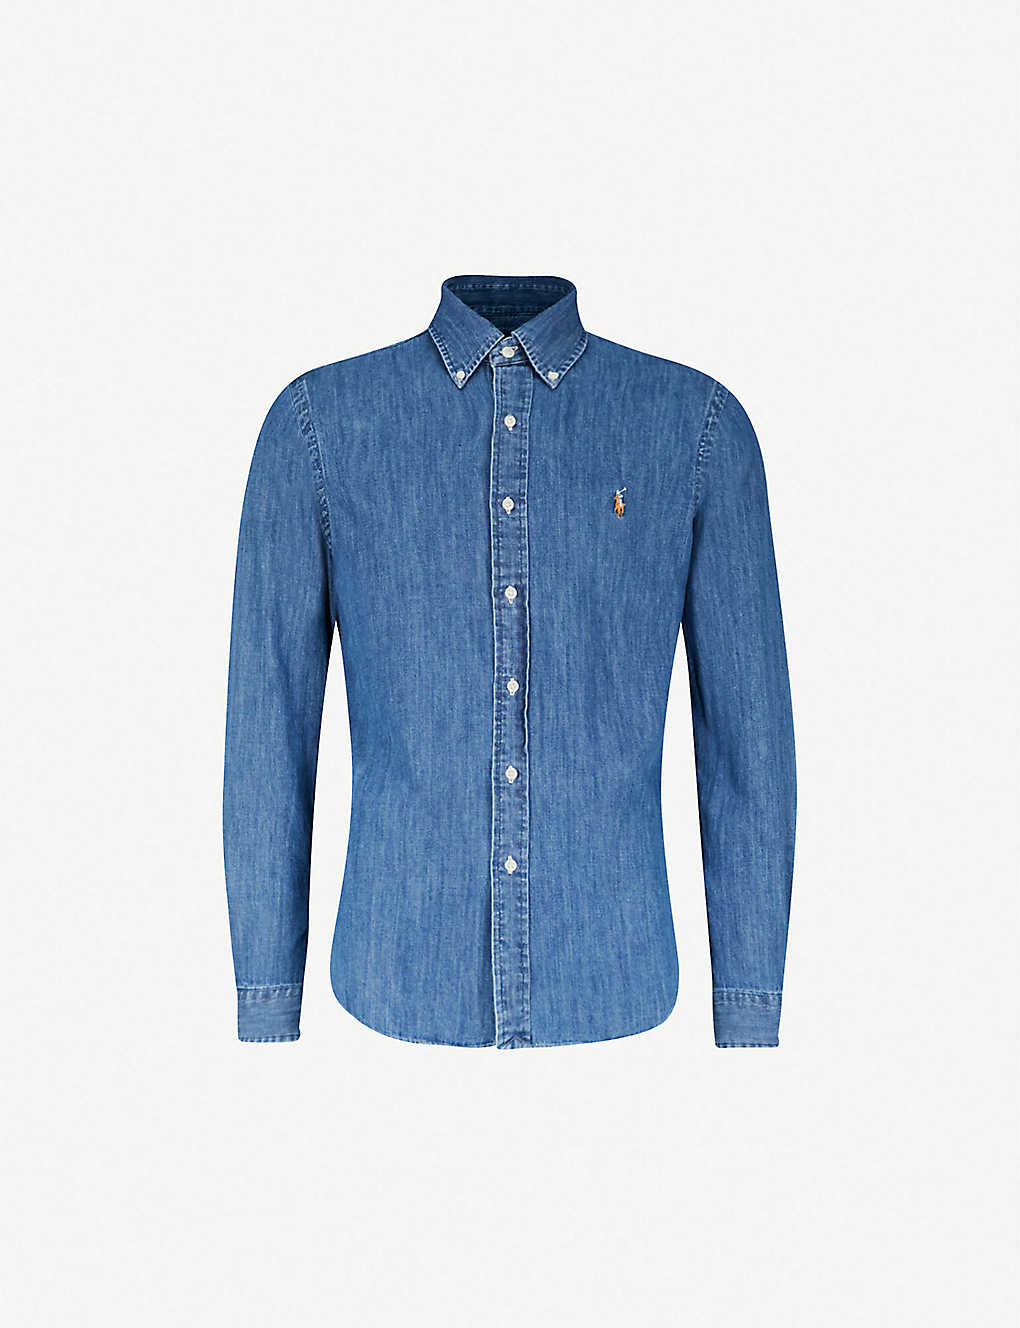 40b1e983b POLO RALPH LAUREN - Slim-fit denim sport shirt | Selfridges.com